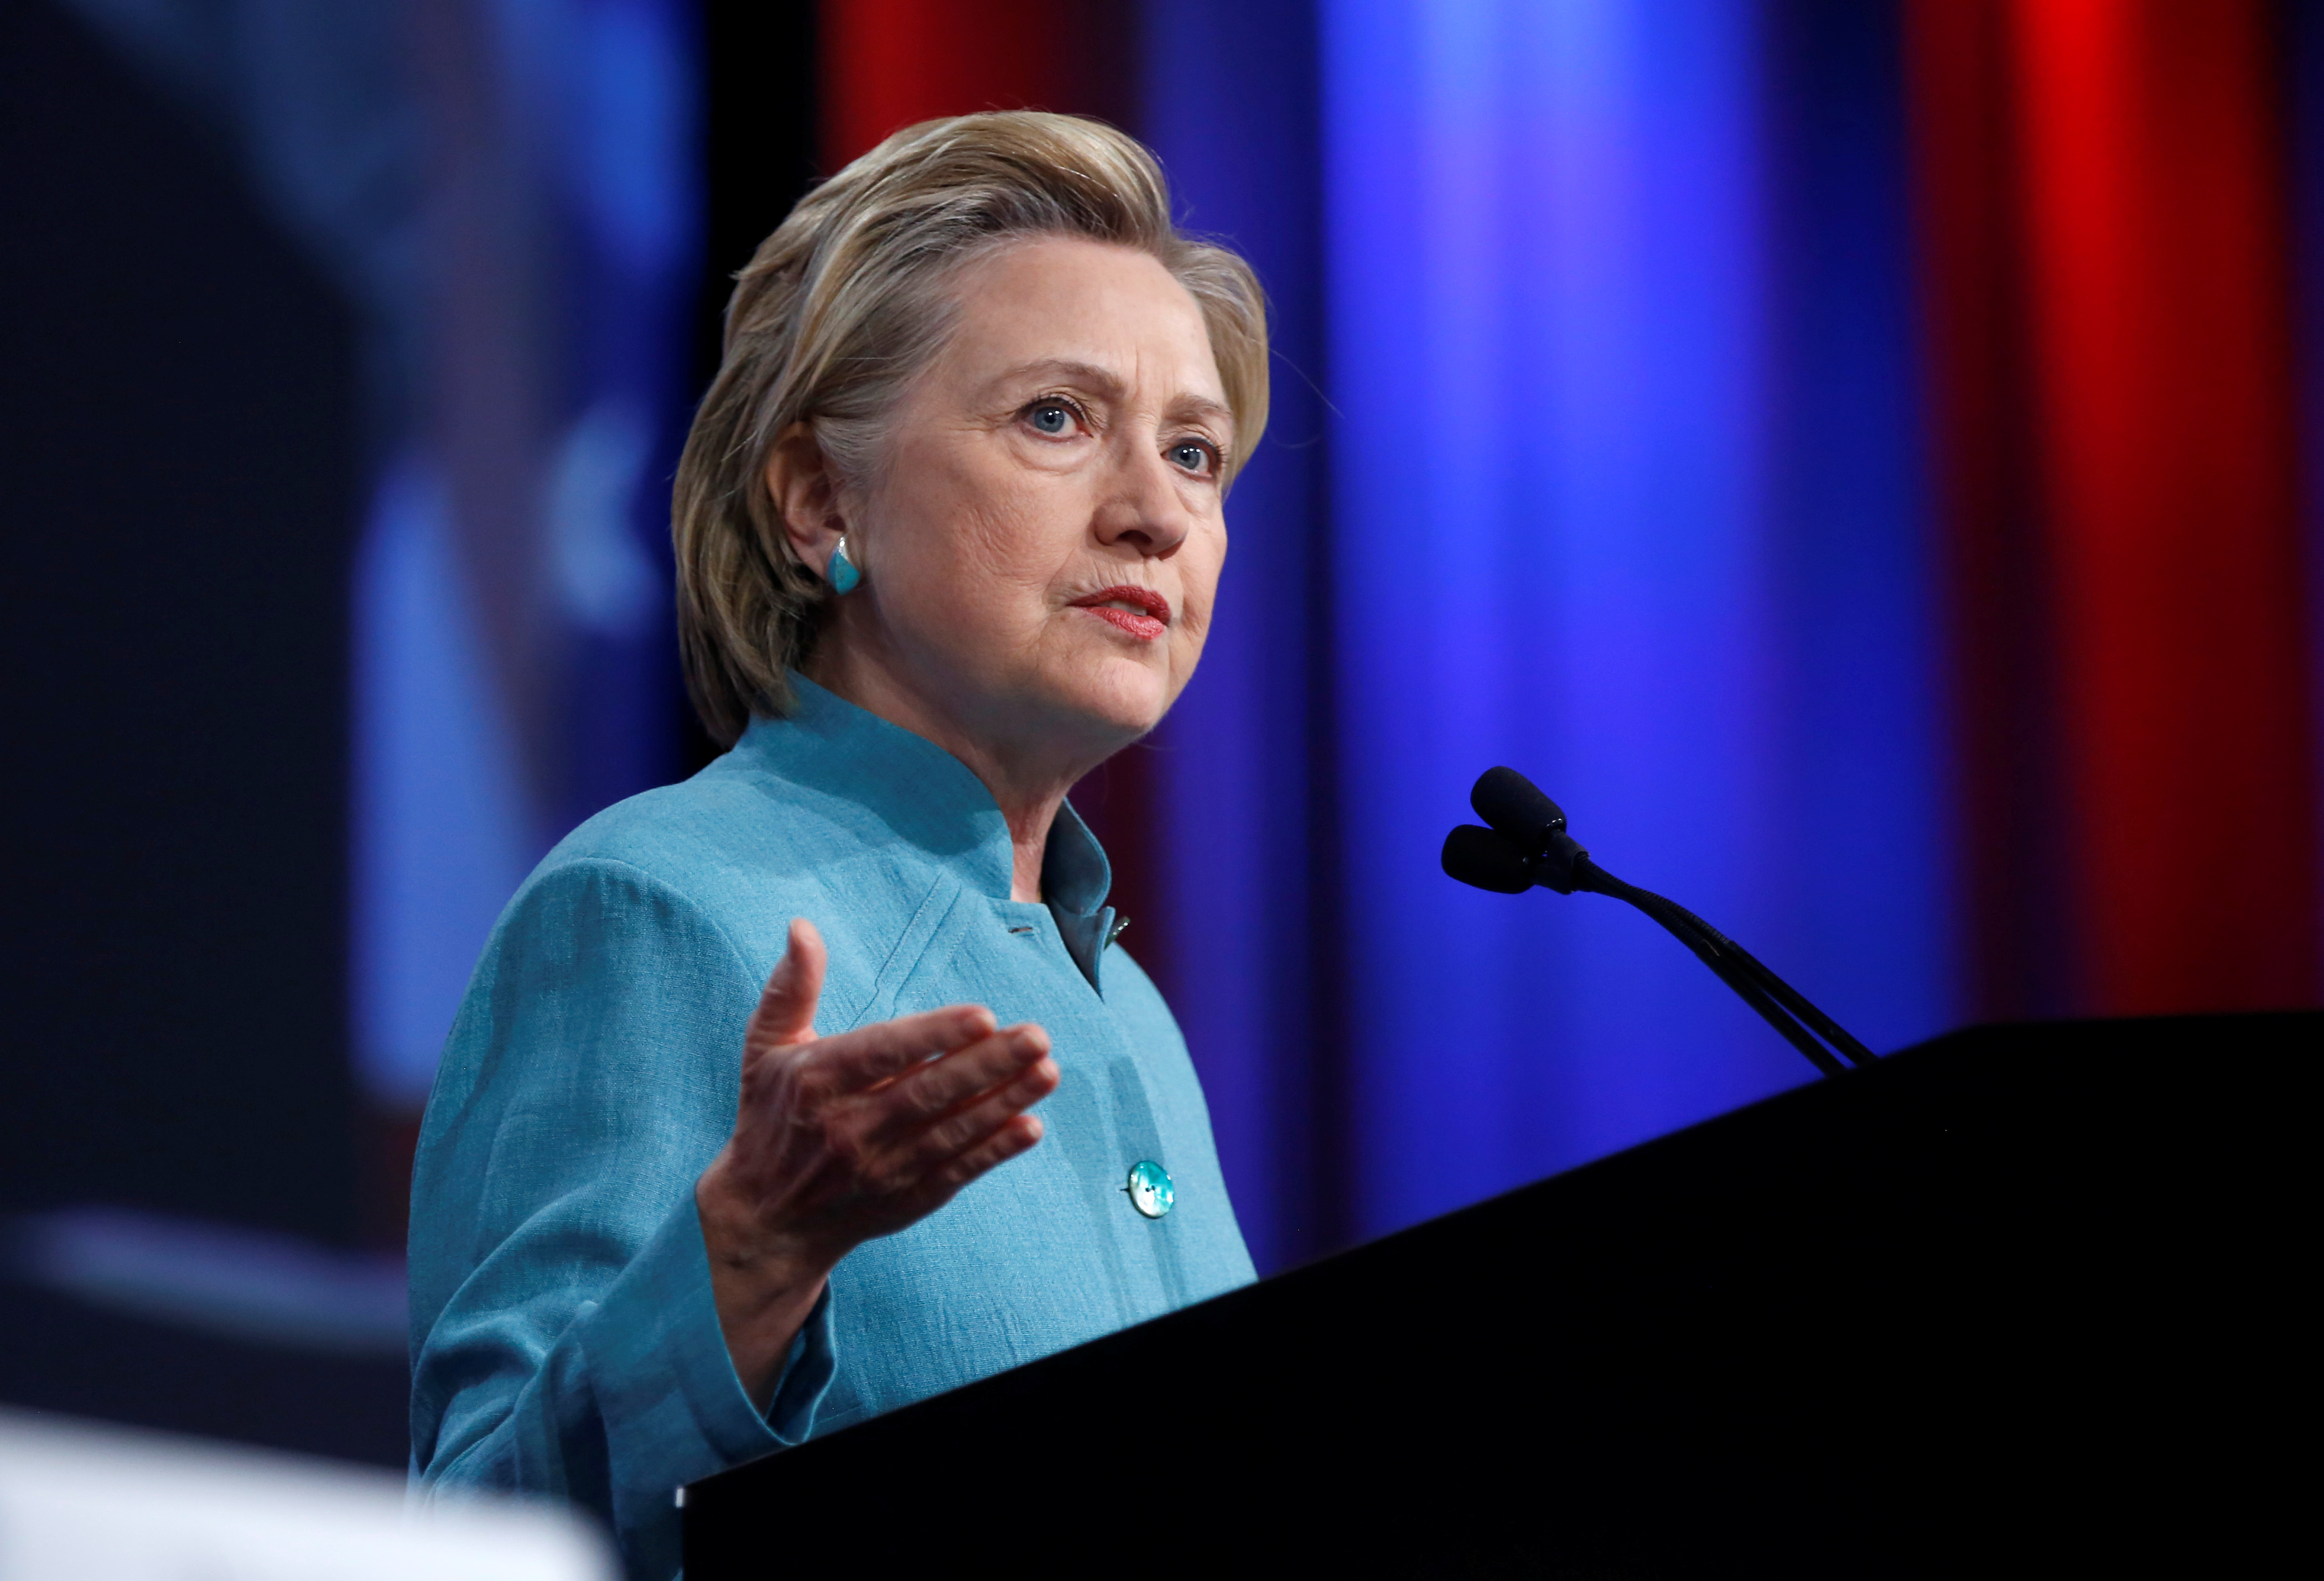 Democratic U.S. presidential candidate Hillary Clinton speaks at the U.S. Conference of Mayors 84th Annual Meeting in Indianapolis, Indiana United States, June 26, 2016. REUTERS/Chris Bergin - RTX2ICSM